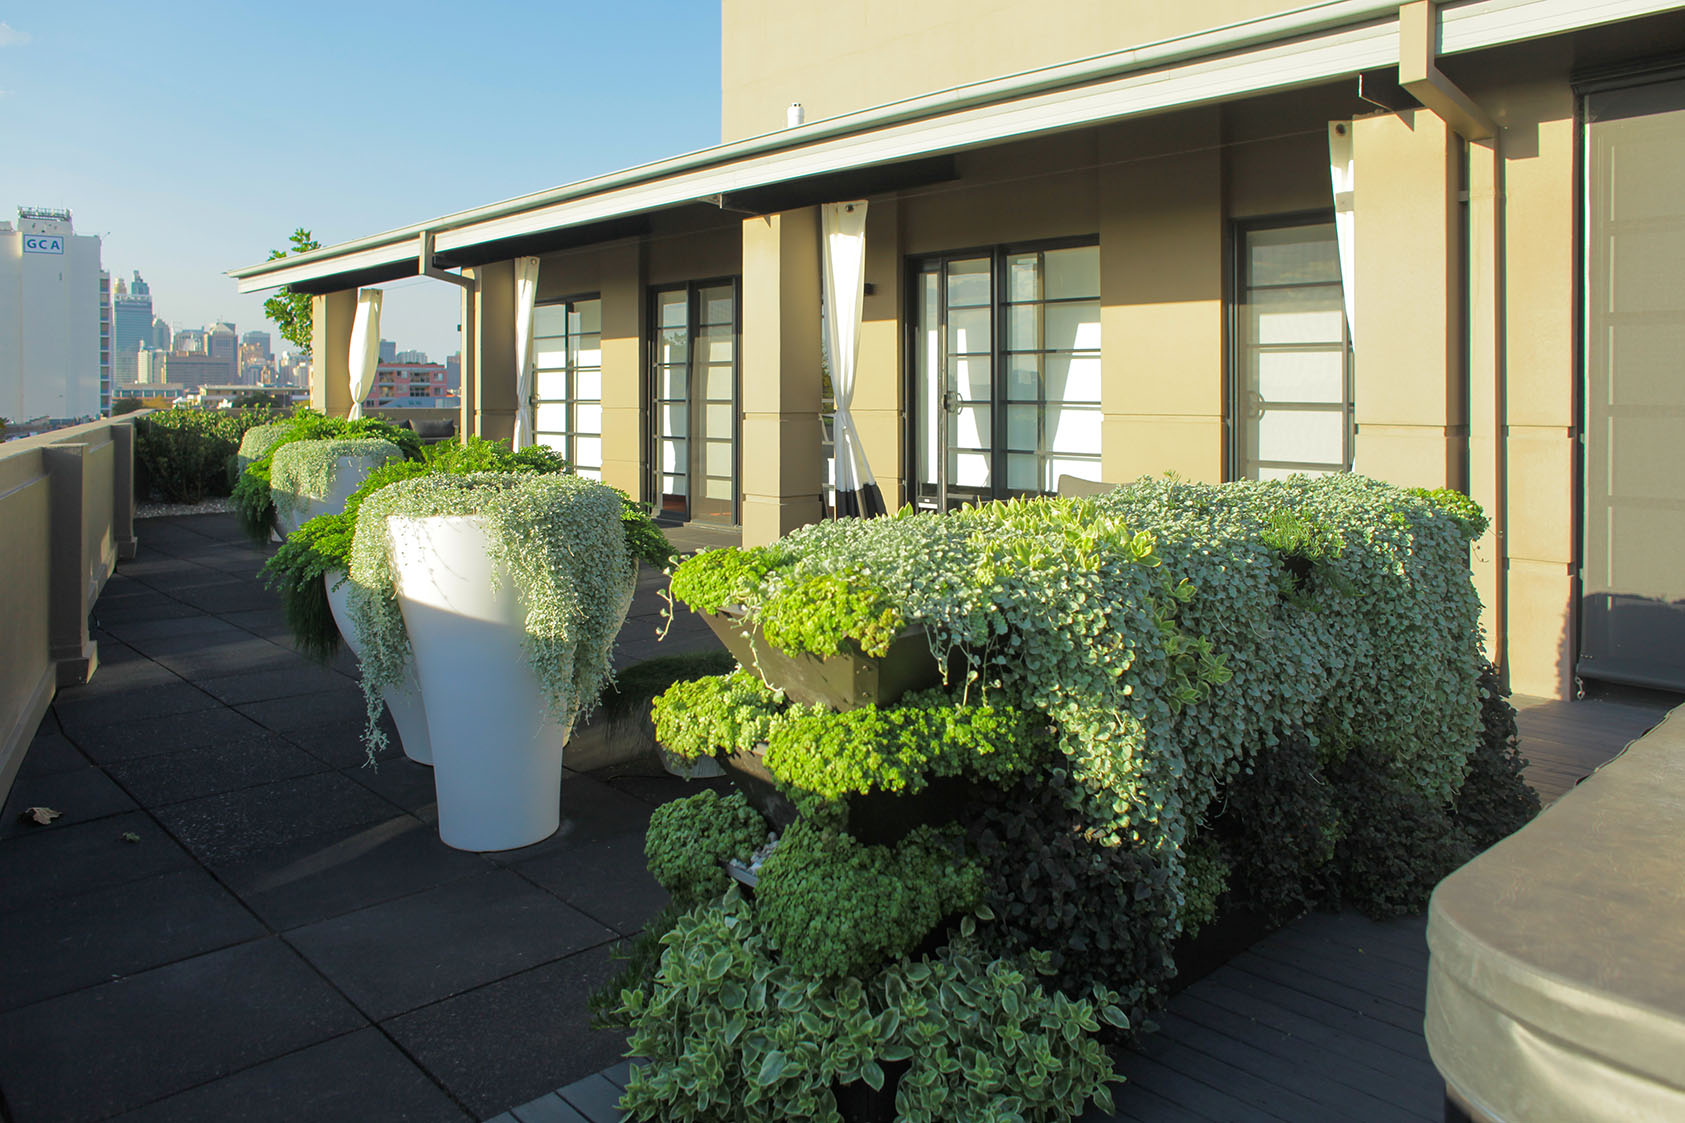 These pots are a great touch to this outdoor space. Very little maintenance when built correct.